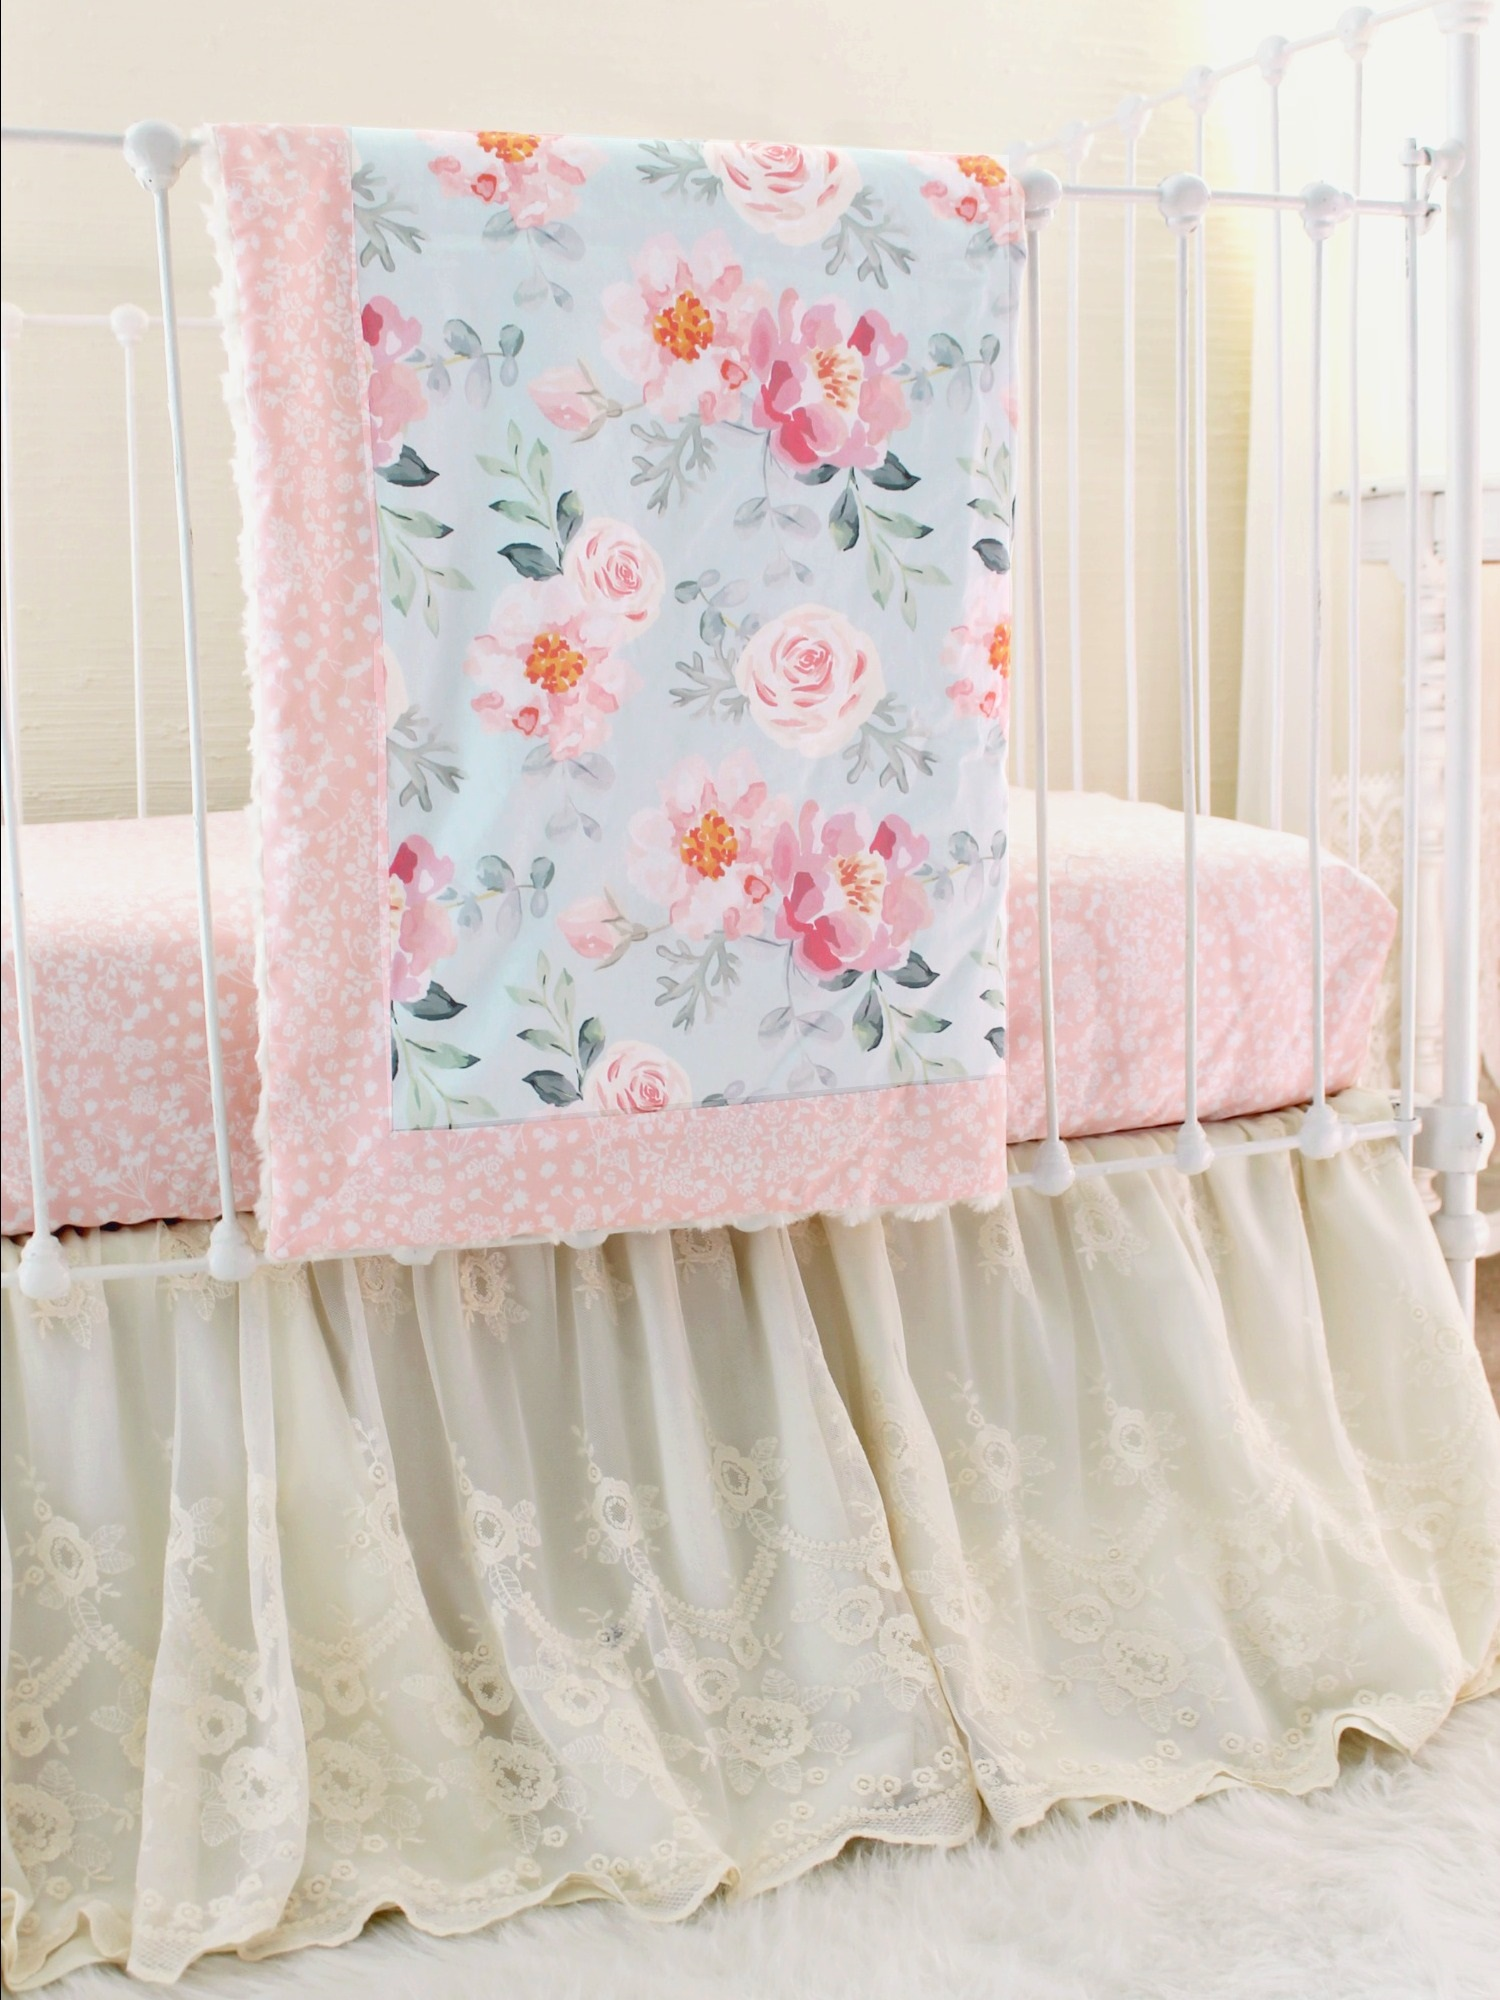 Vintage Floral Crib Bedding Romantic Blooms